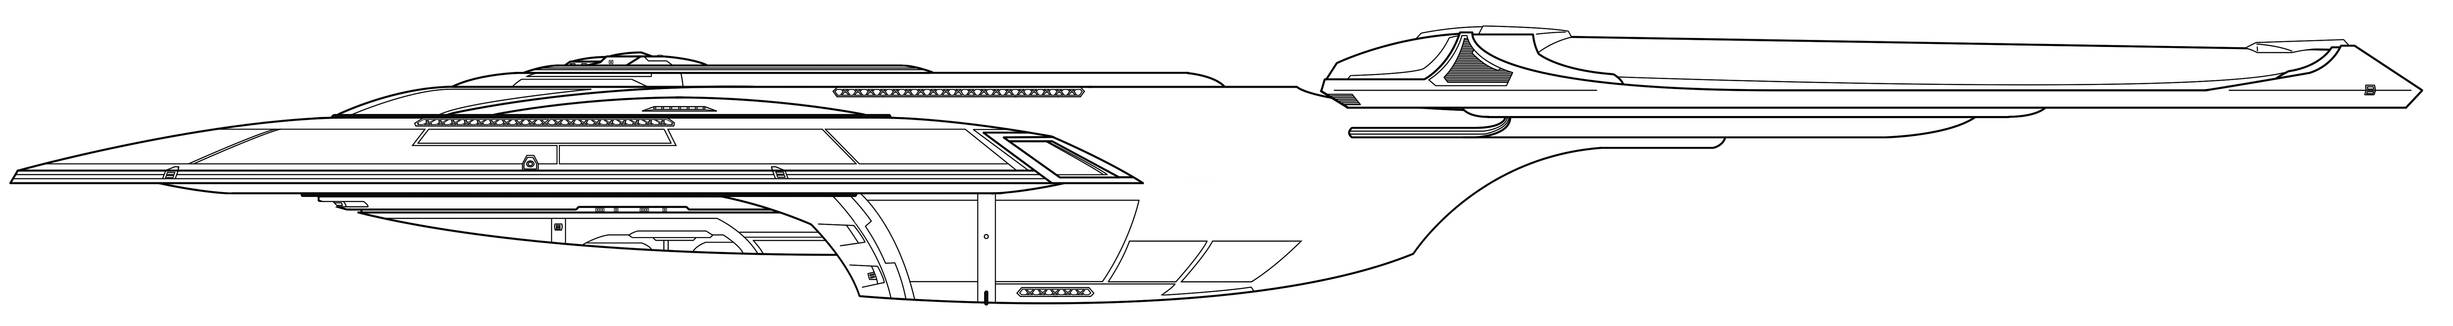 New-ship-side WIP